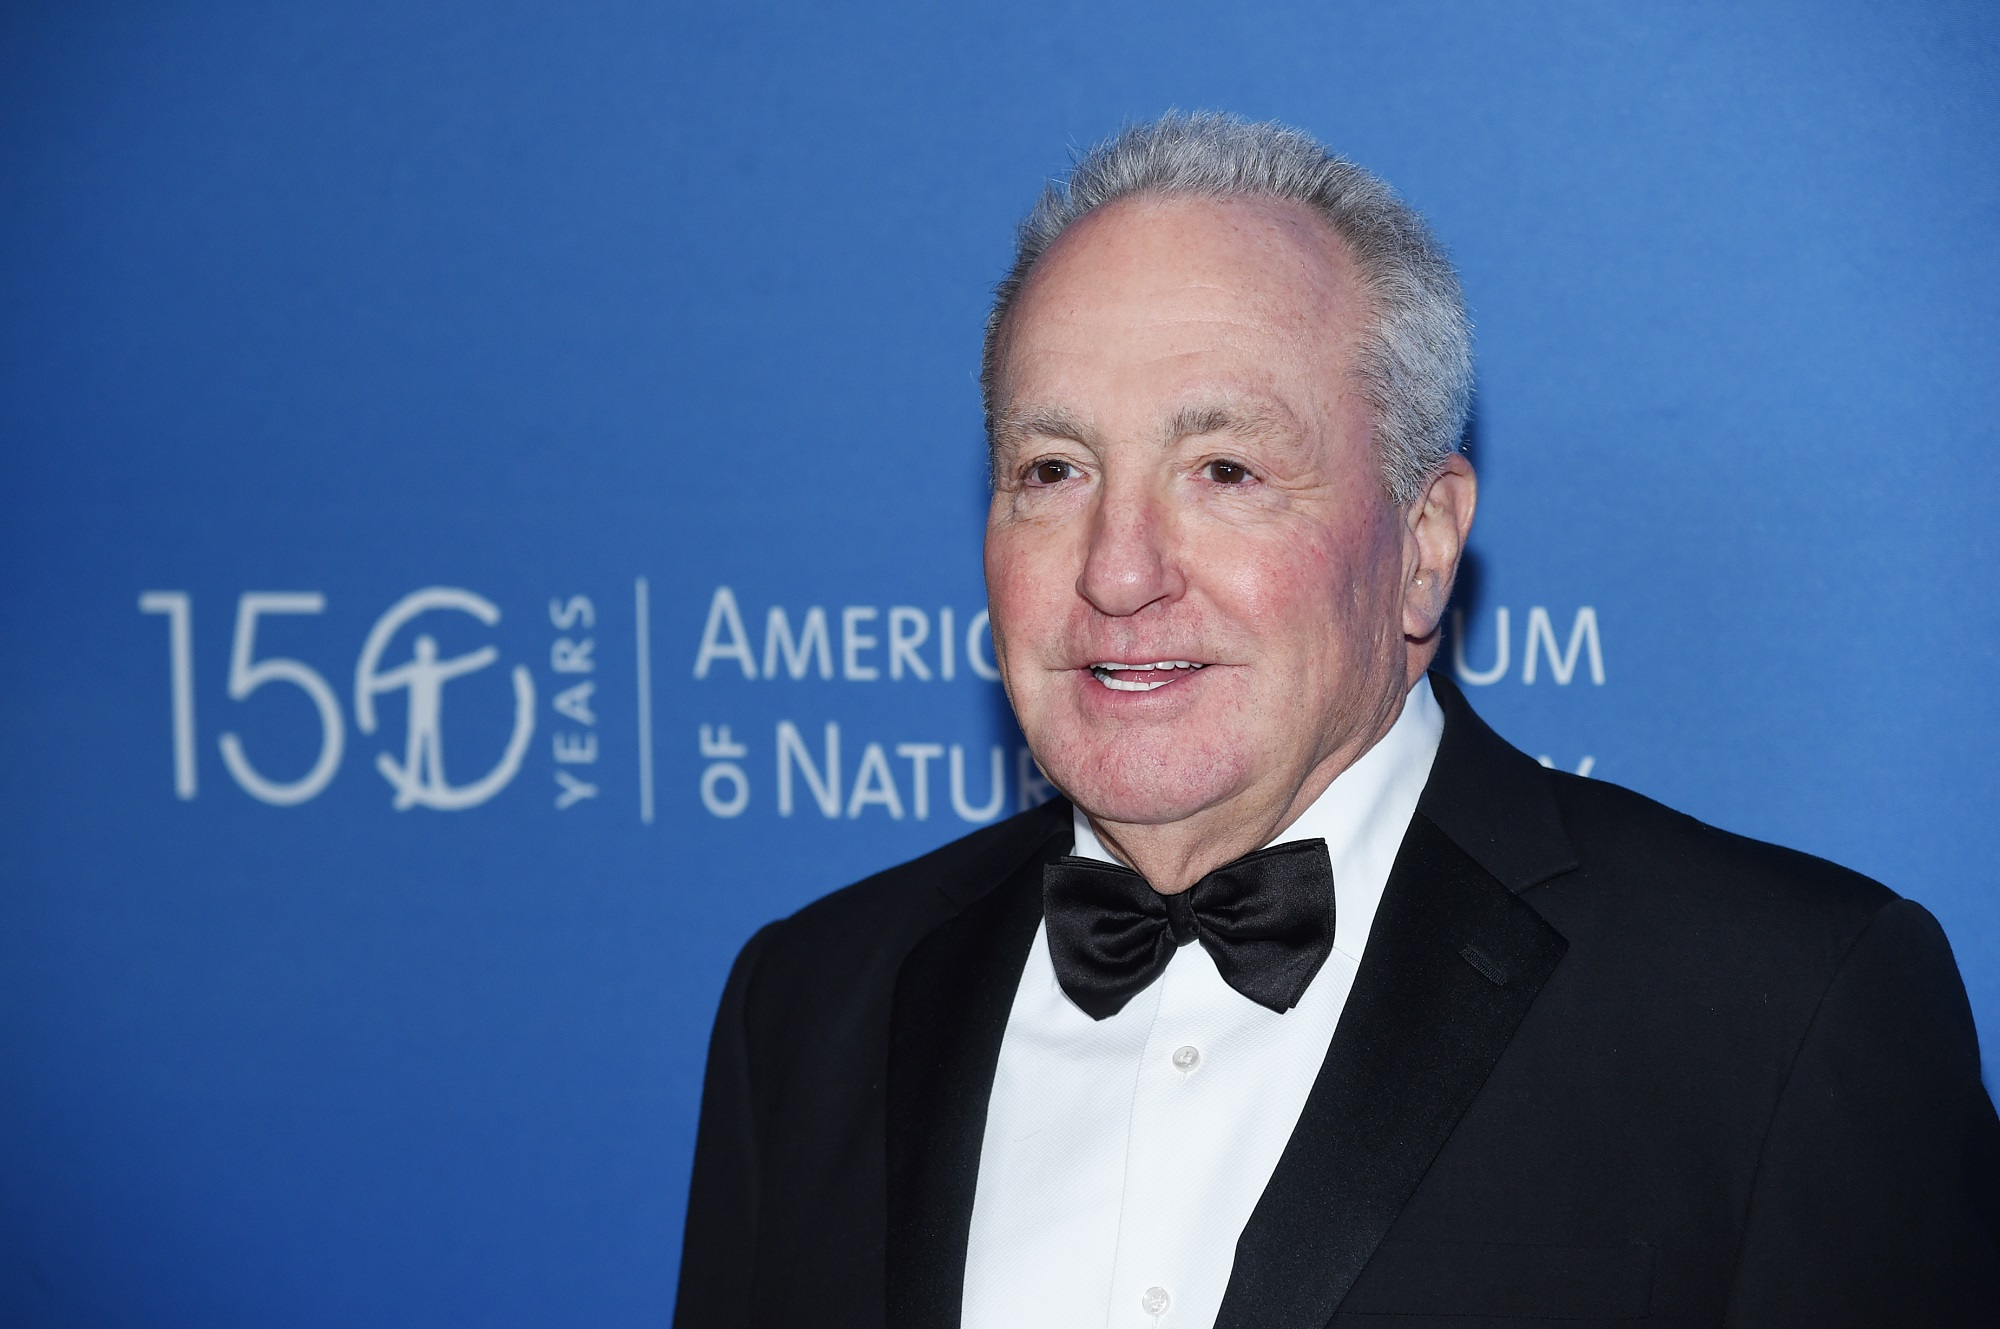 Lorne Michaels invited Elon Musk to Saturday Night Live on May 8